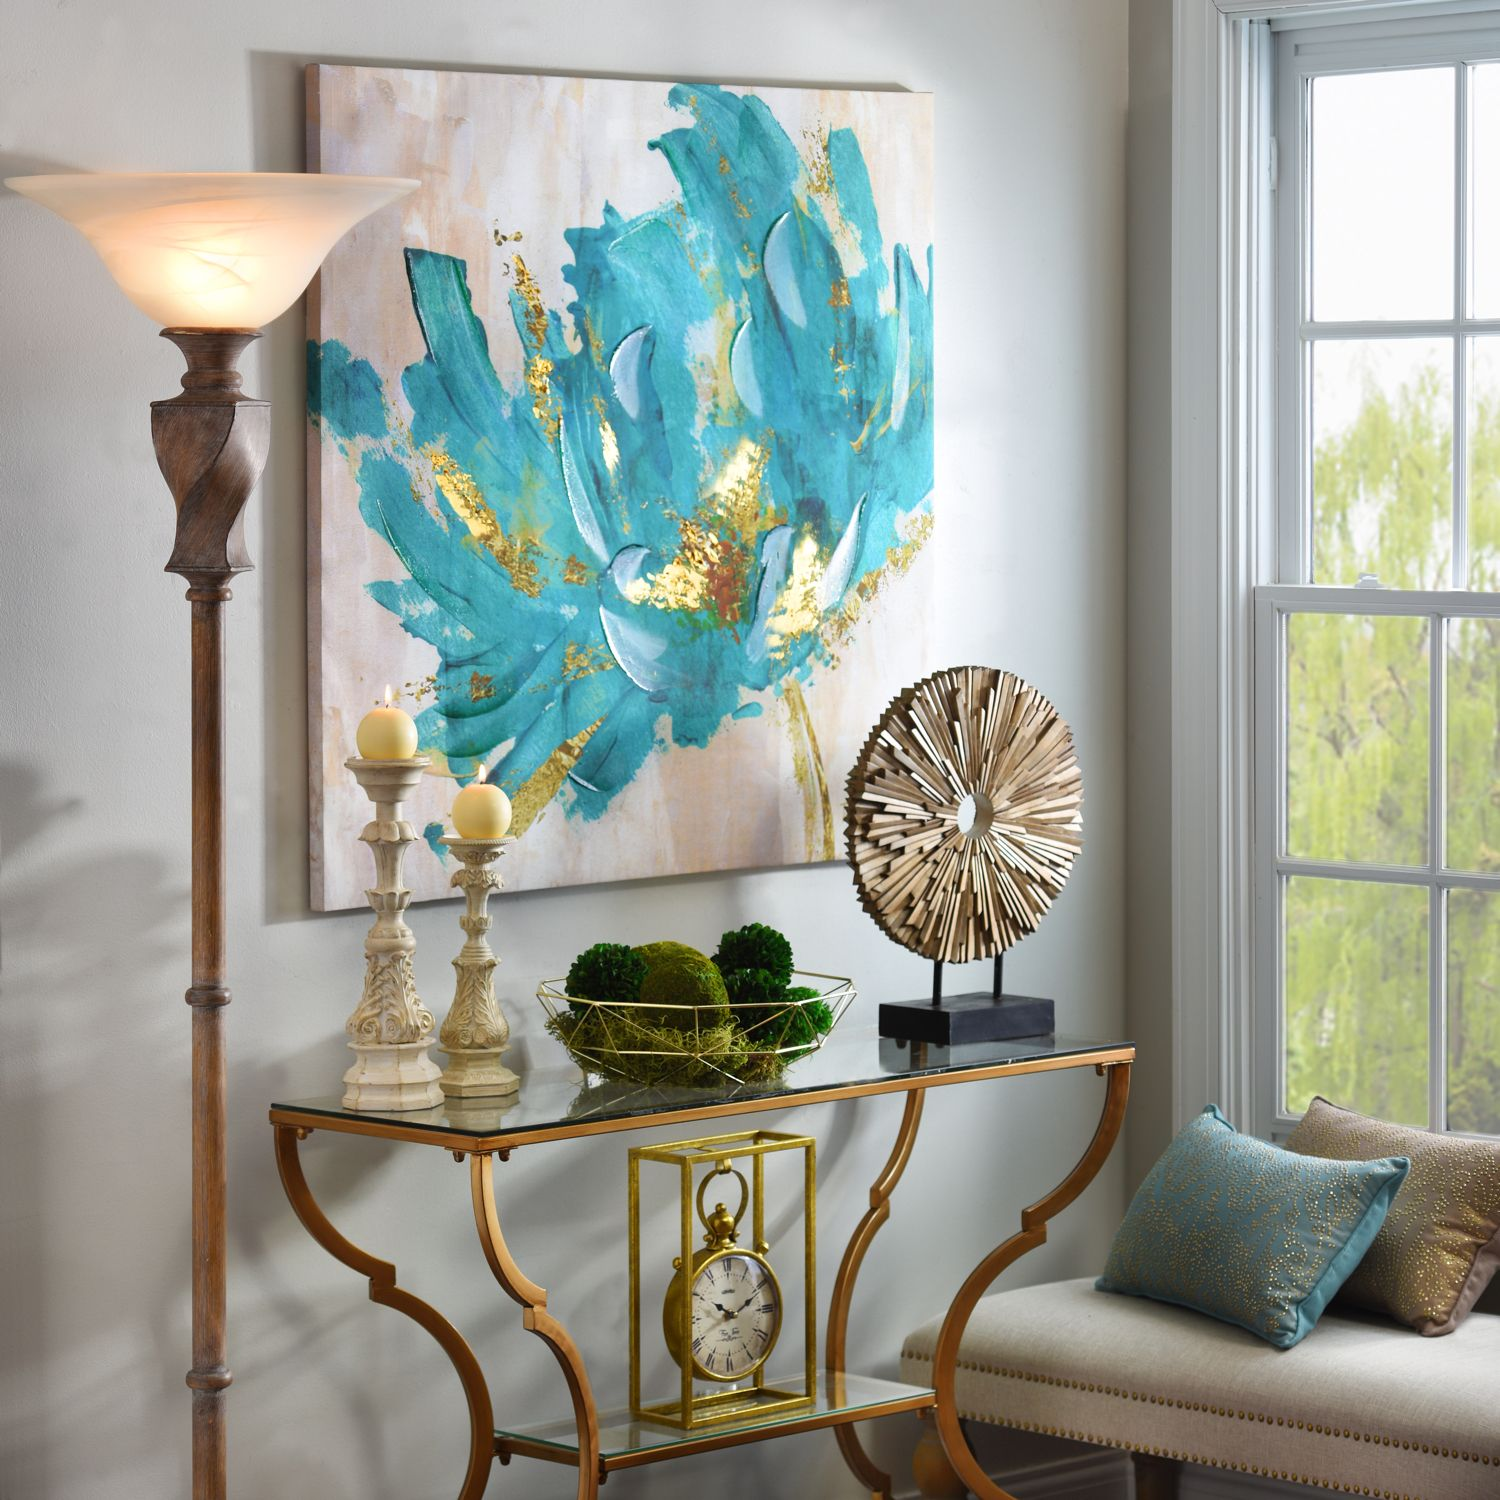 With a mix of colorful abstracts bright florals and soothing